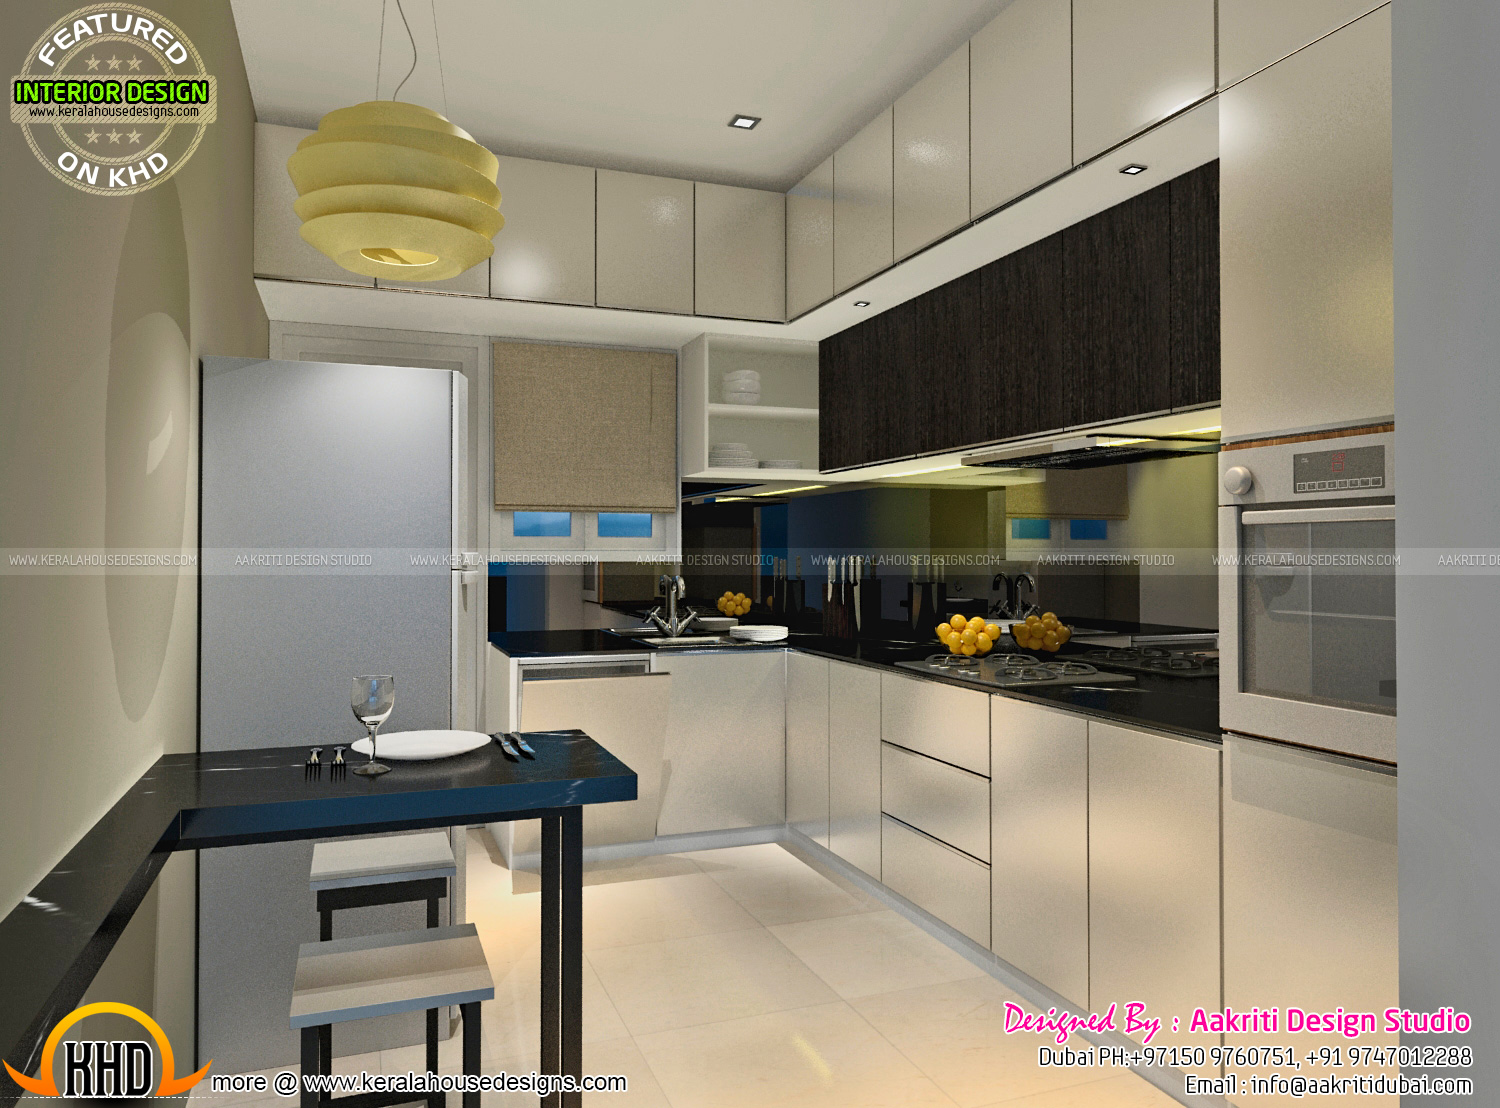 Dining, kitchen, wash area interior - Kerala home design